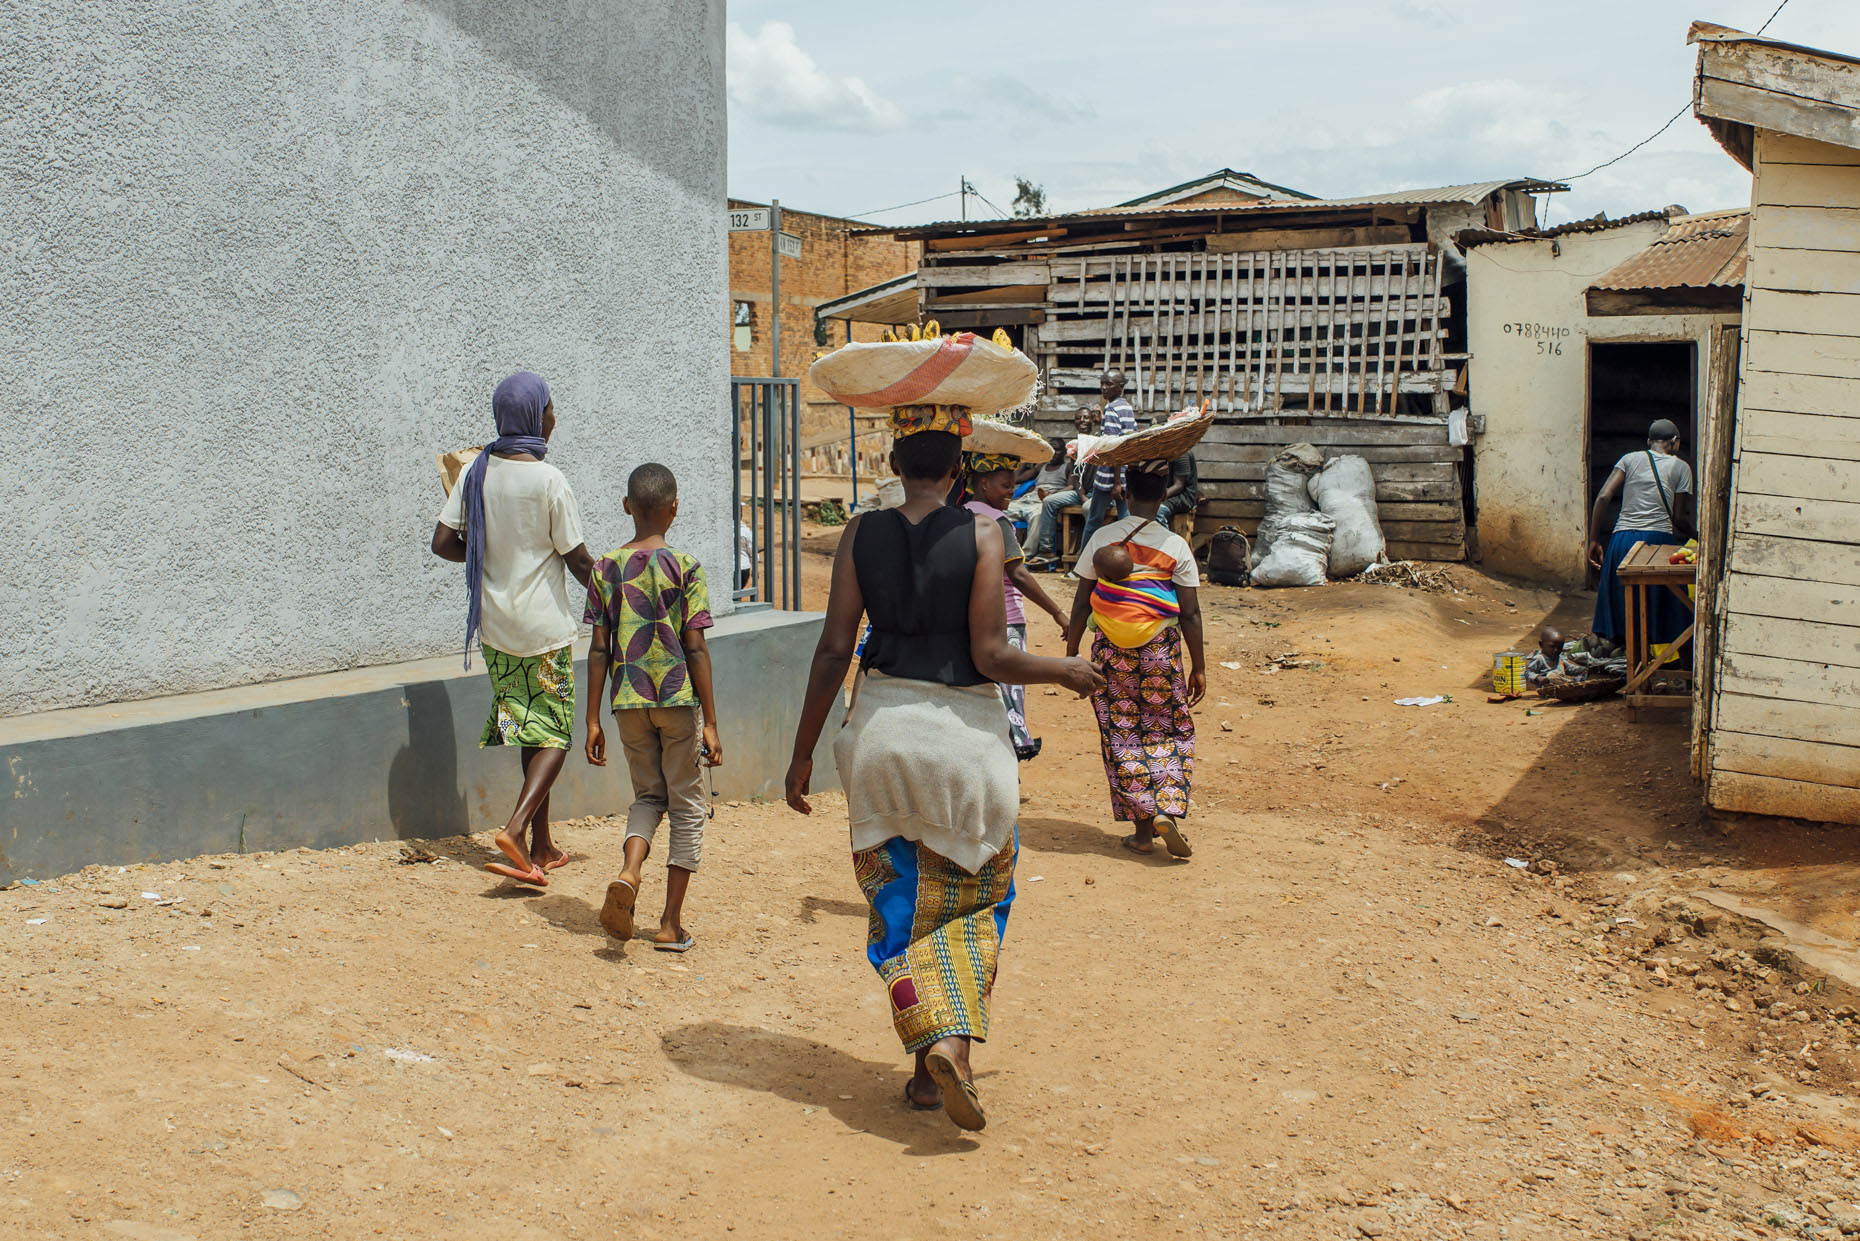 Street scene in Kigali Rwands with women carrying fruit in baskets on head